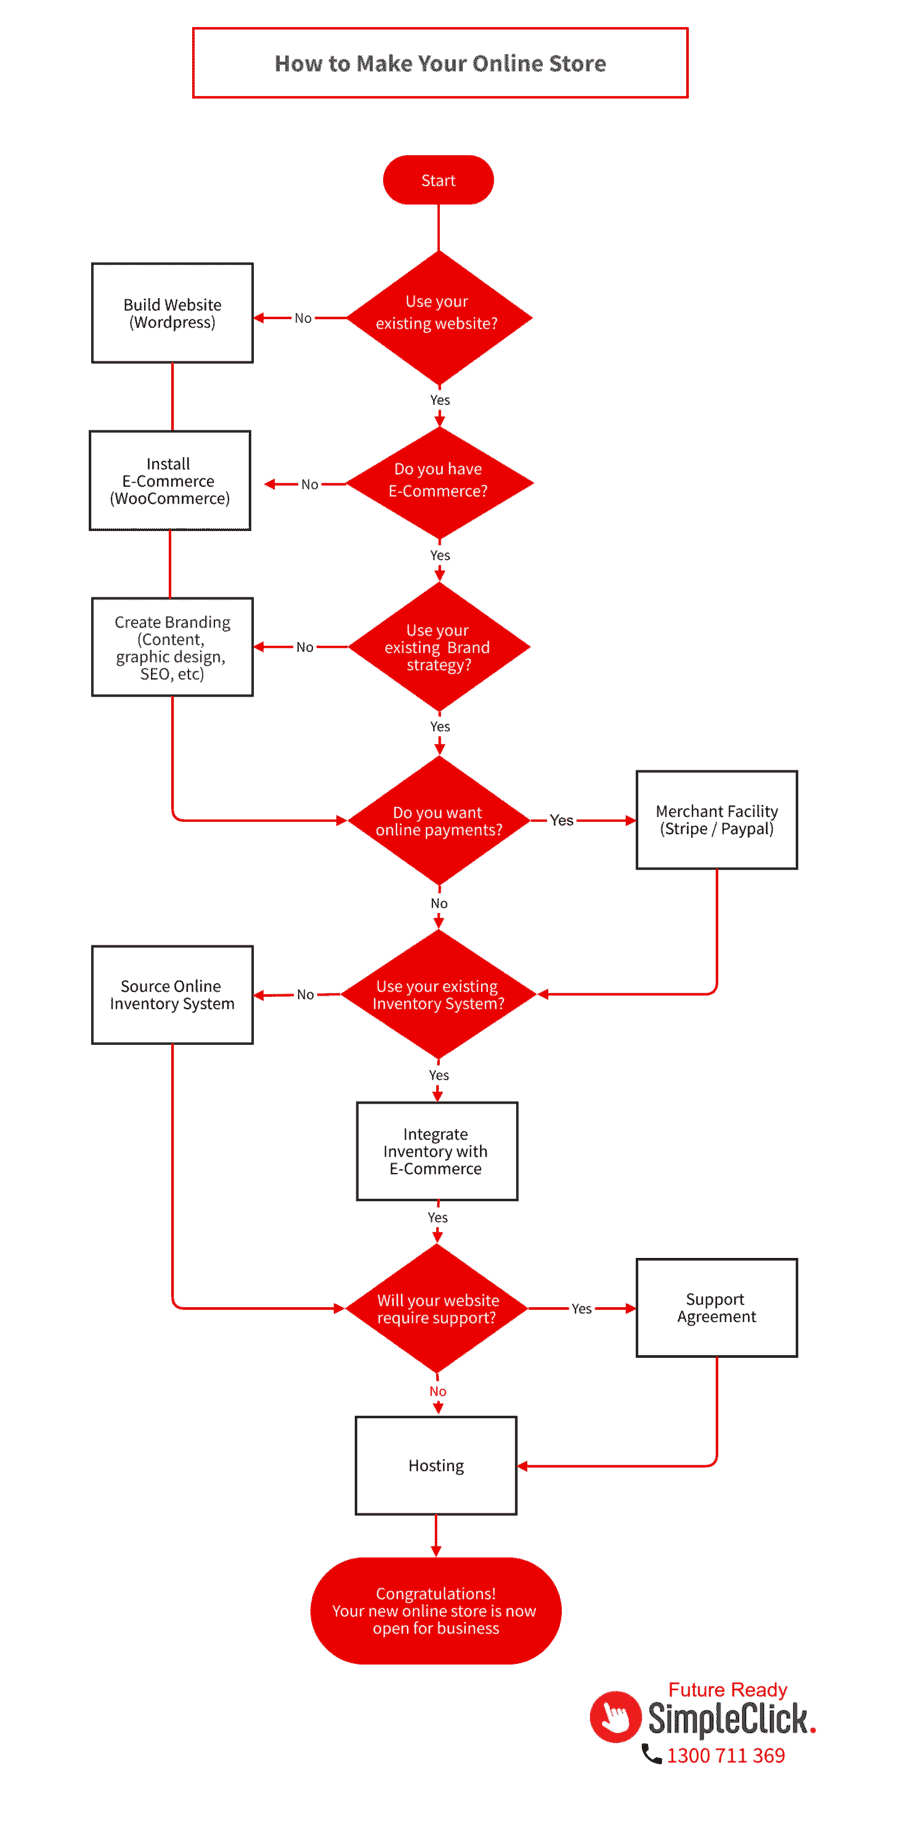 Flowchart of how to make an online store